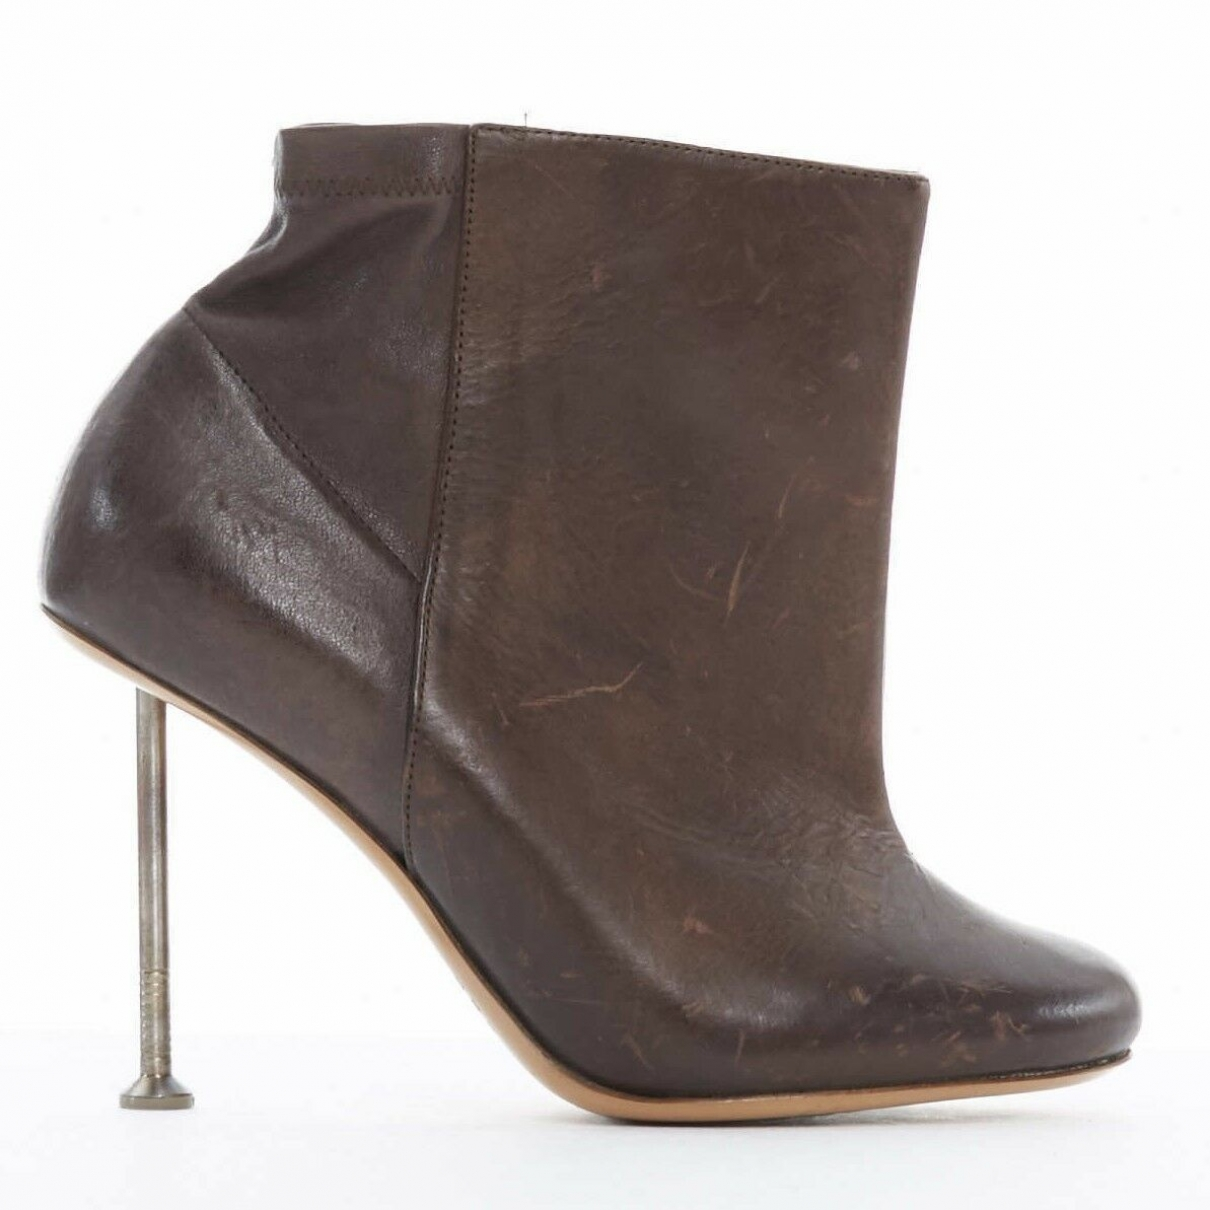 Maison Martin Margiela \N Brown Leather Ankle boots for Women 37 EU